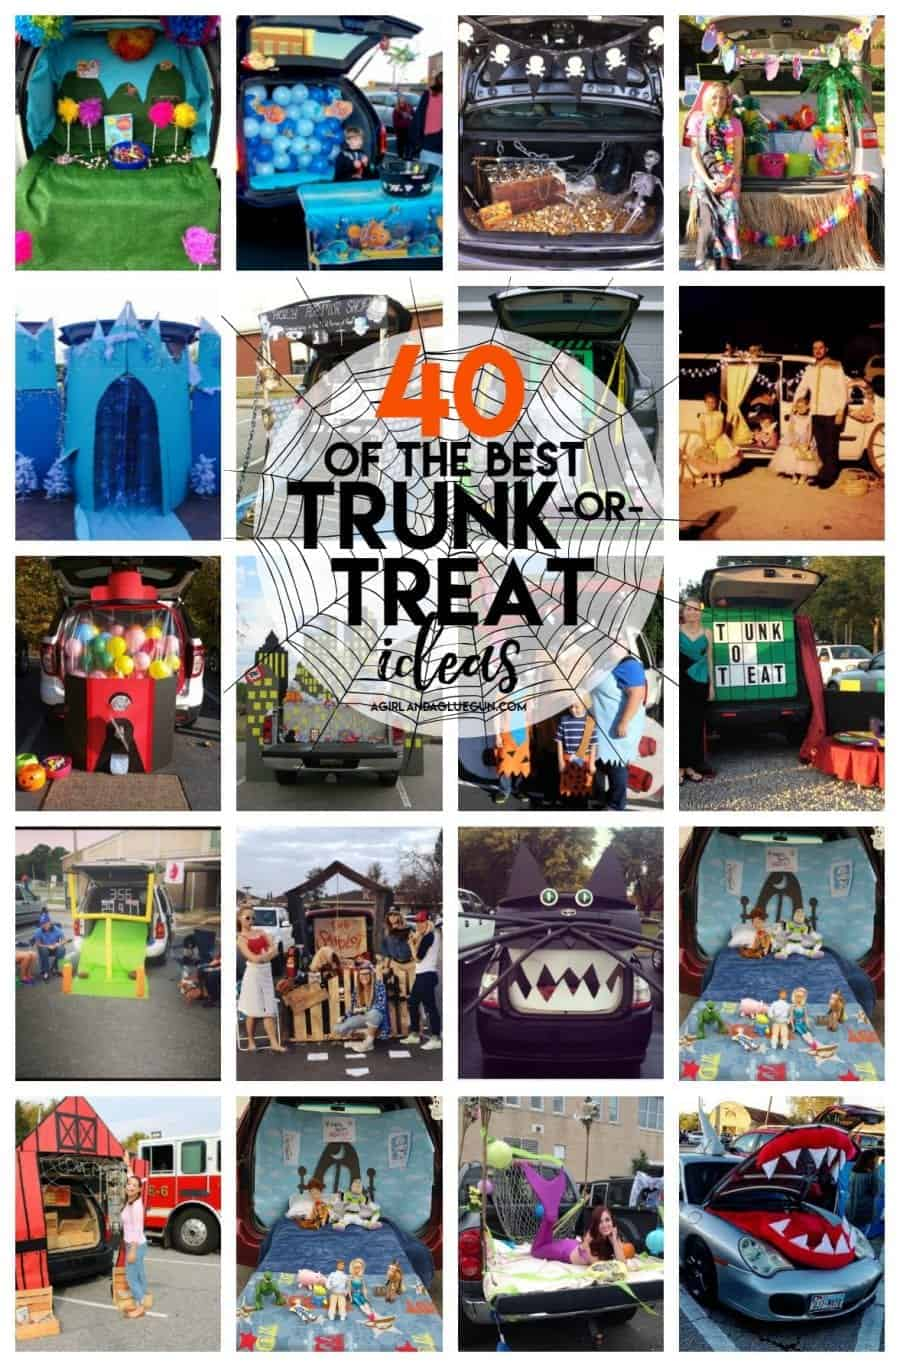 40-of-the-best-trunk-or-treat-ideas-for-halloween